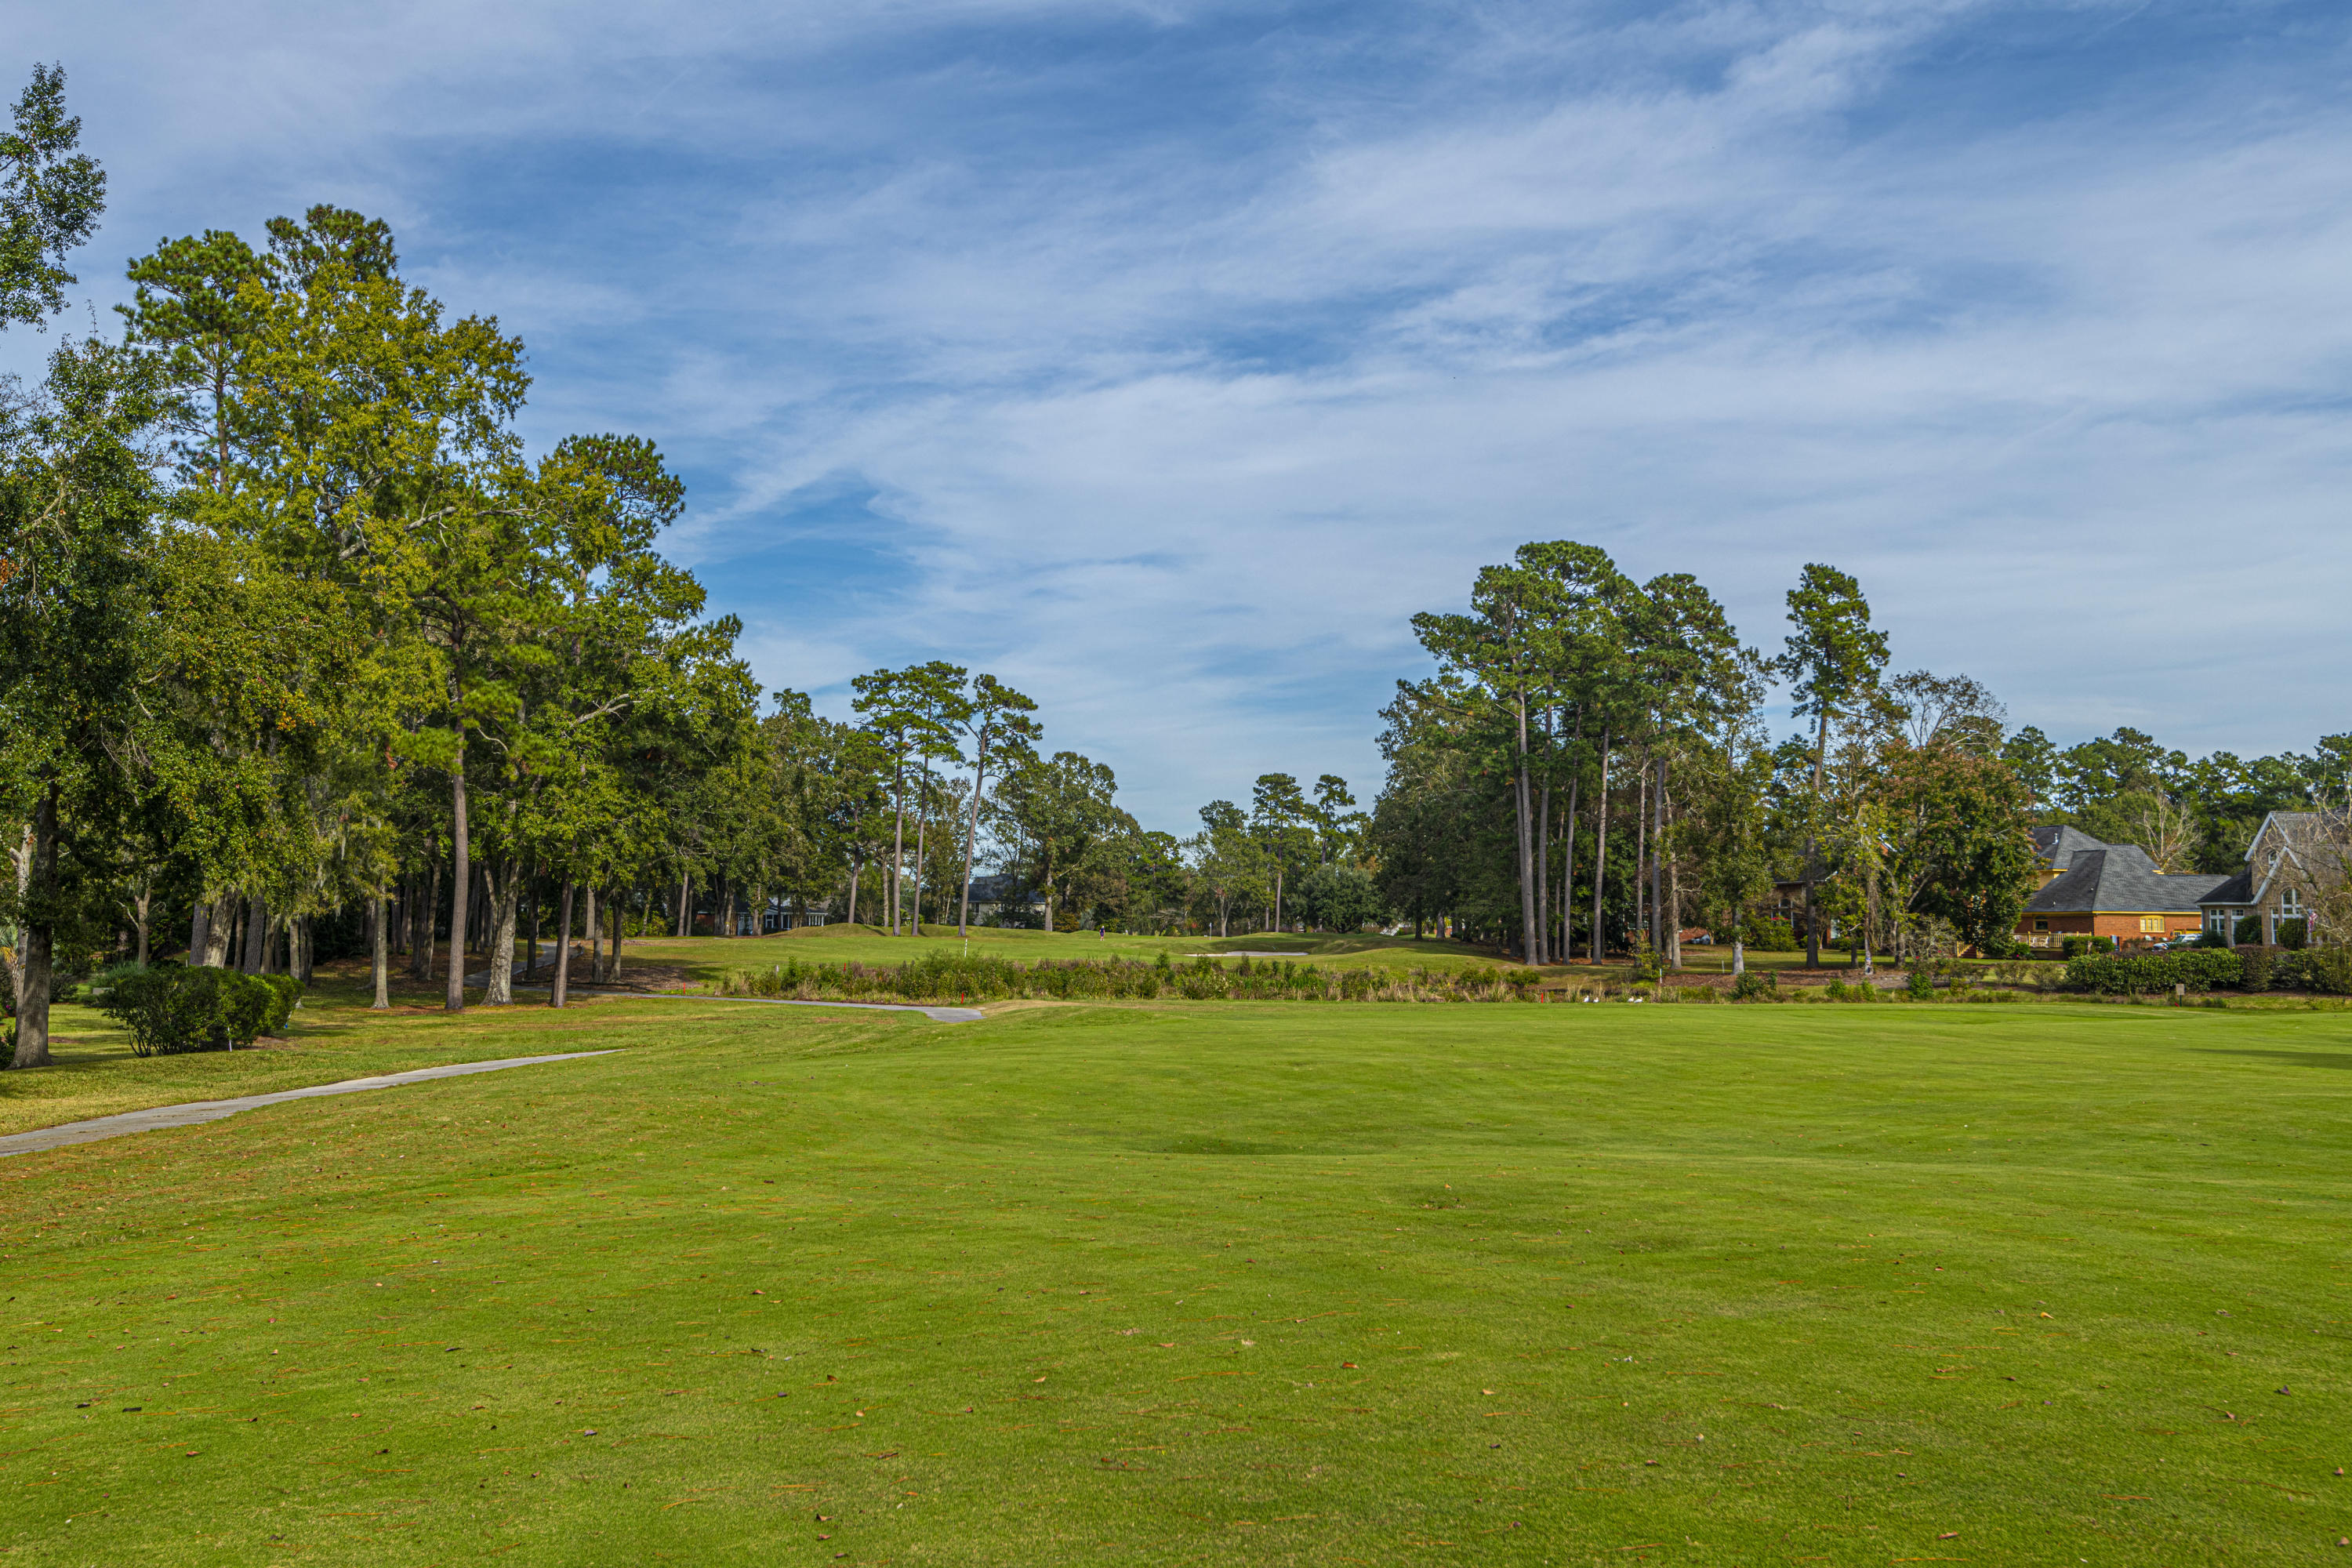 Coosaw Creek Country Club Homes For Sale - 8642 Fairway Woods, North Charleston, SC - 3